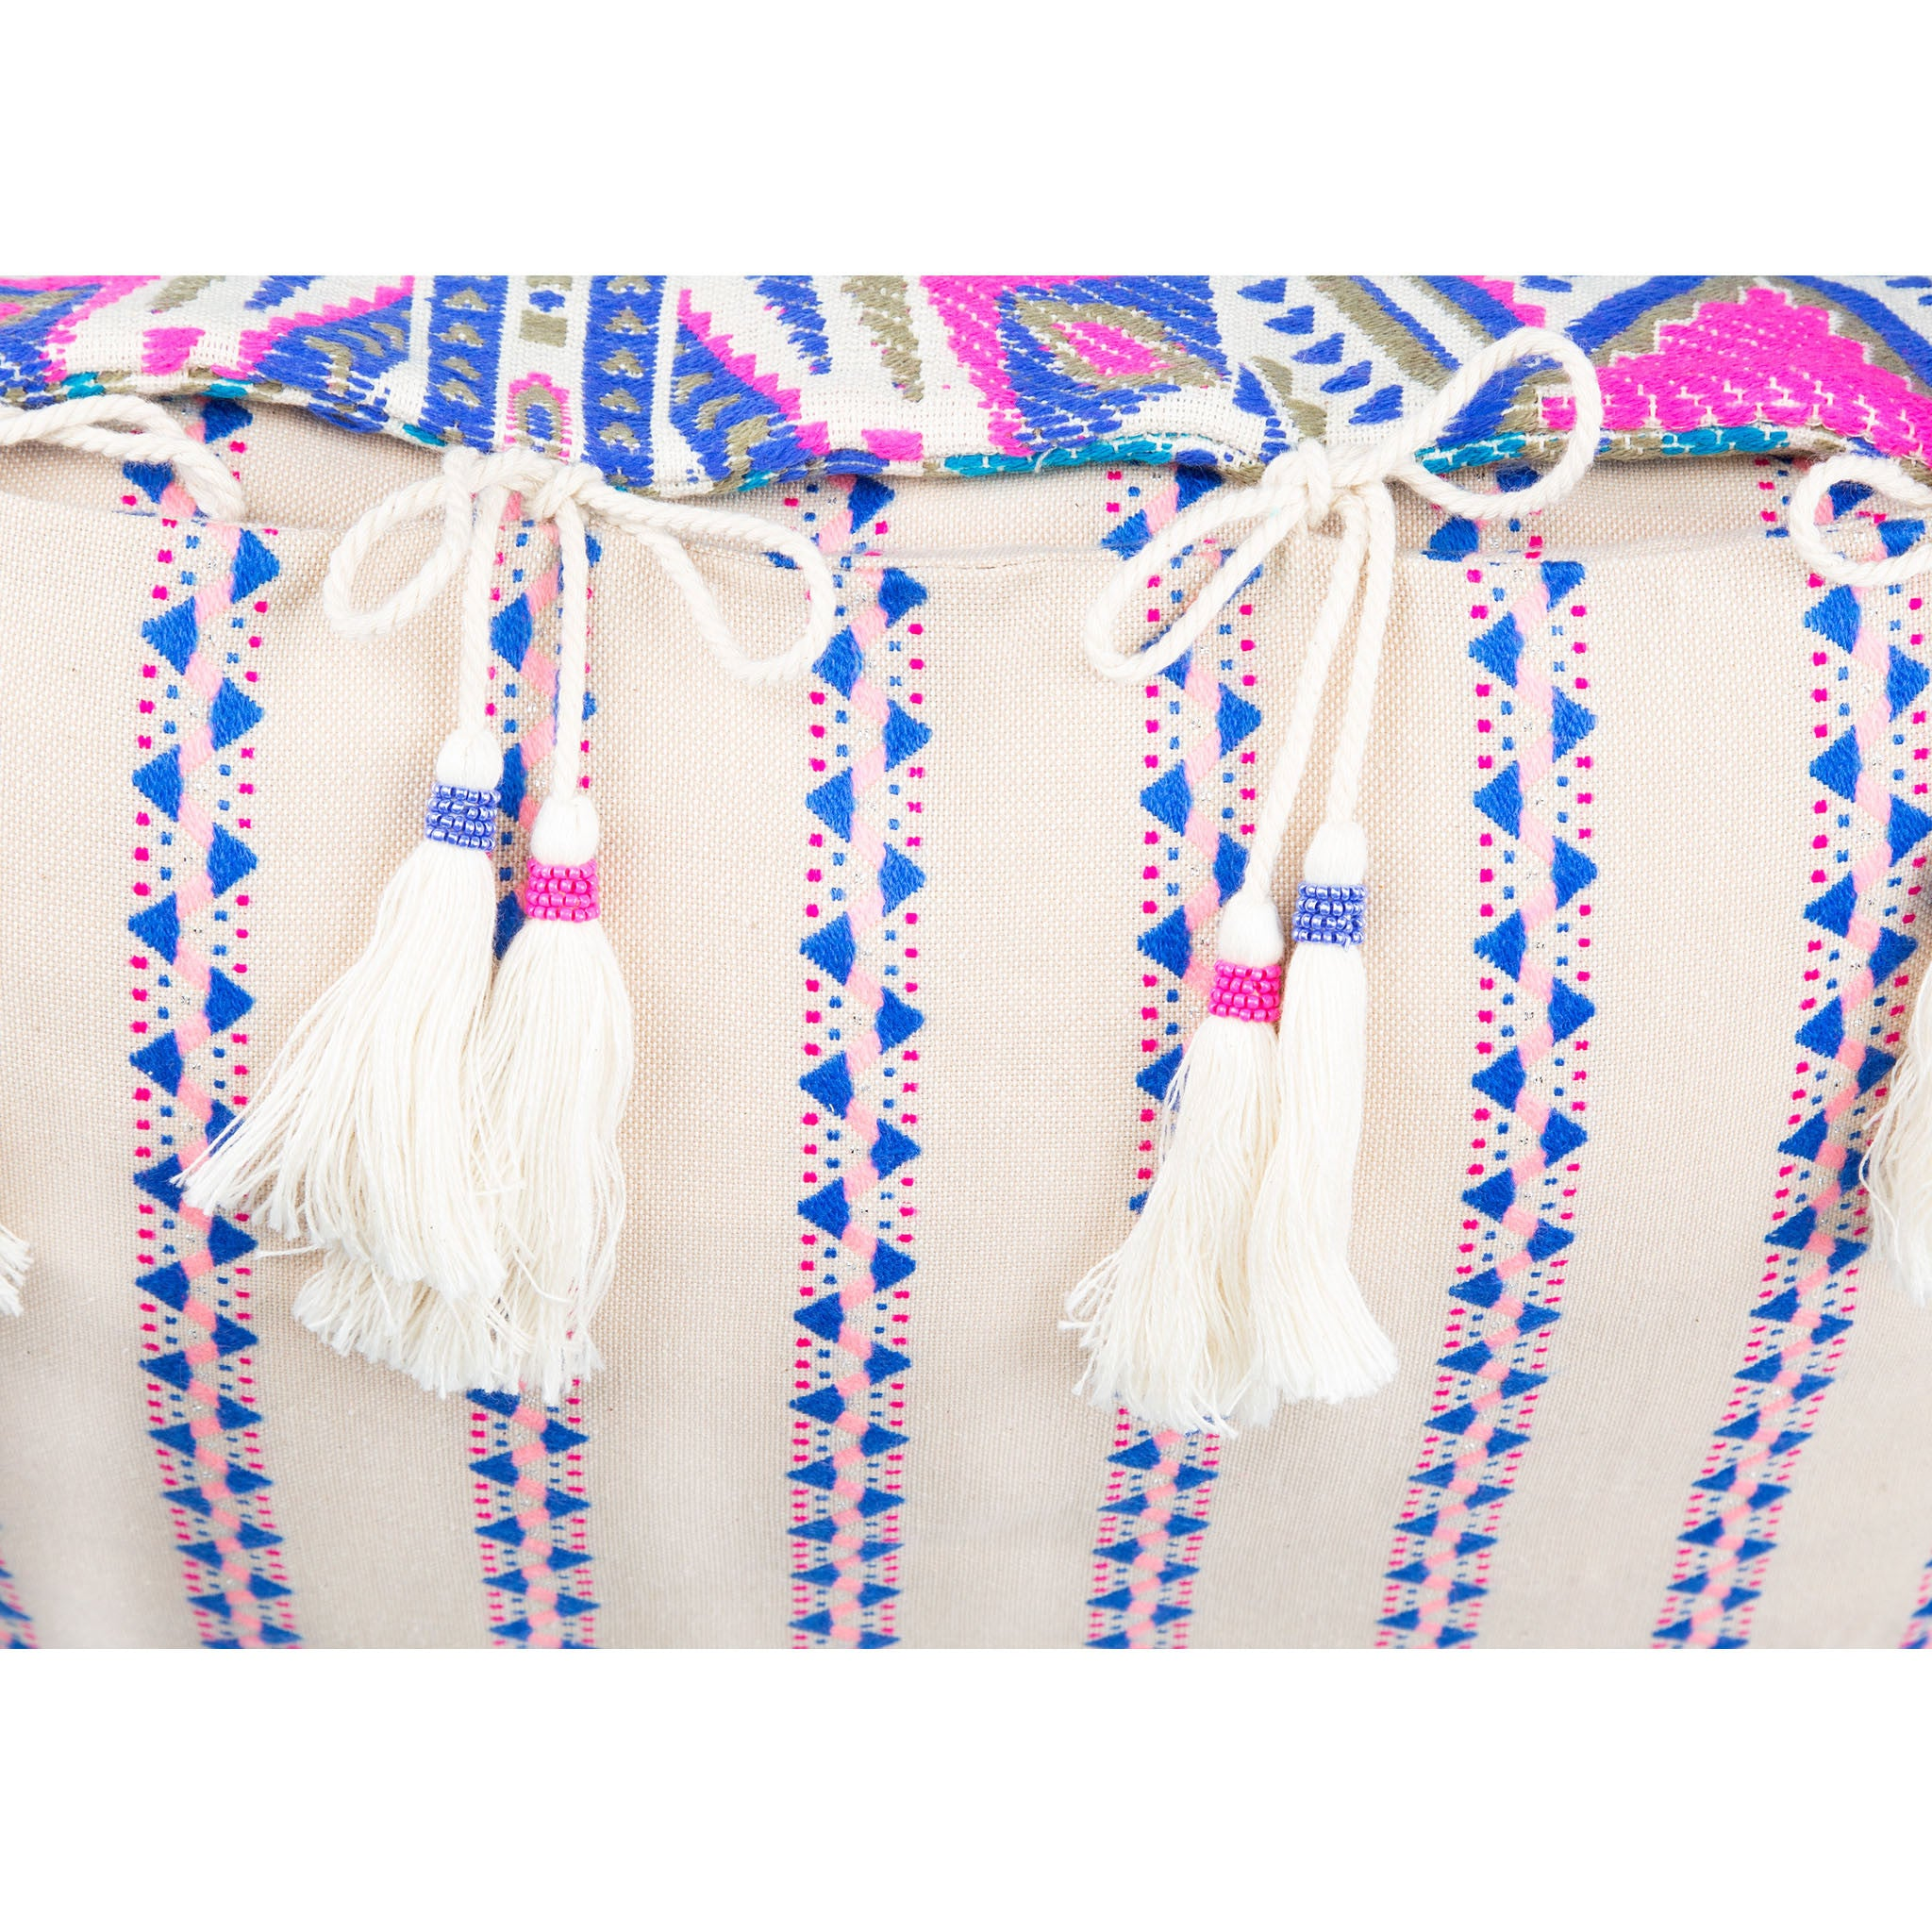 Bedouin-style pink, blue & white cotton tasselled cushion - Bivain - 4